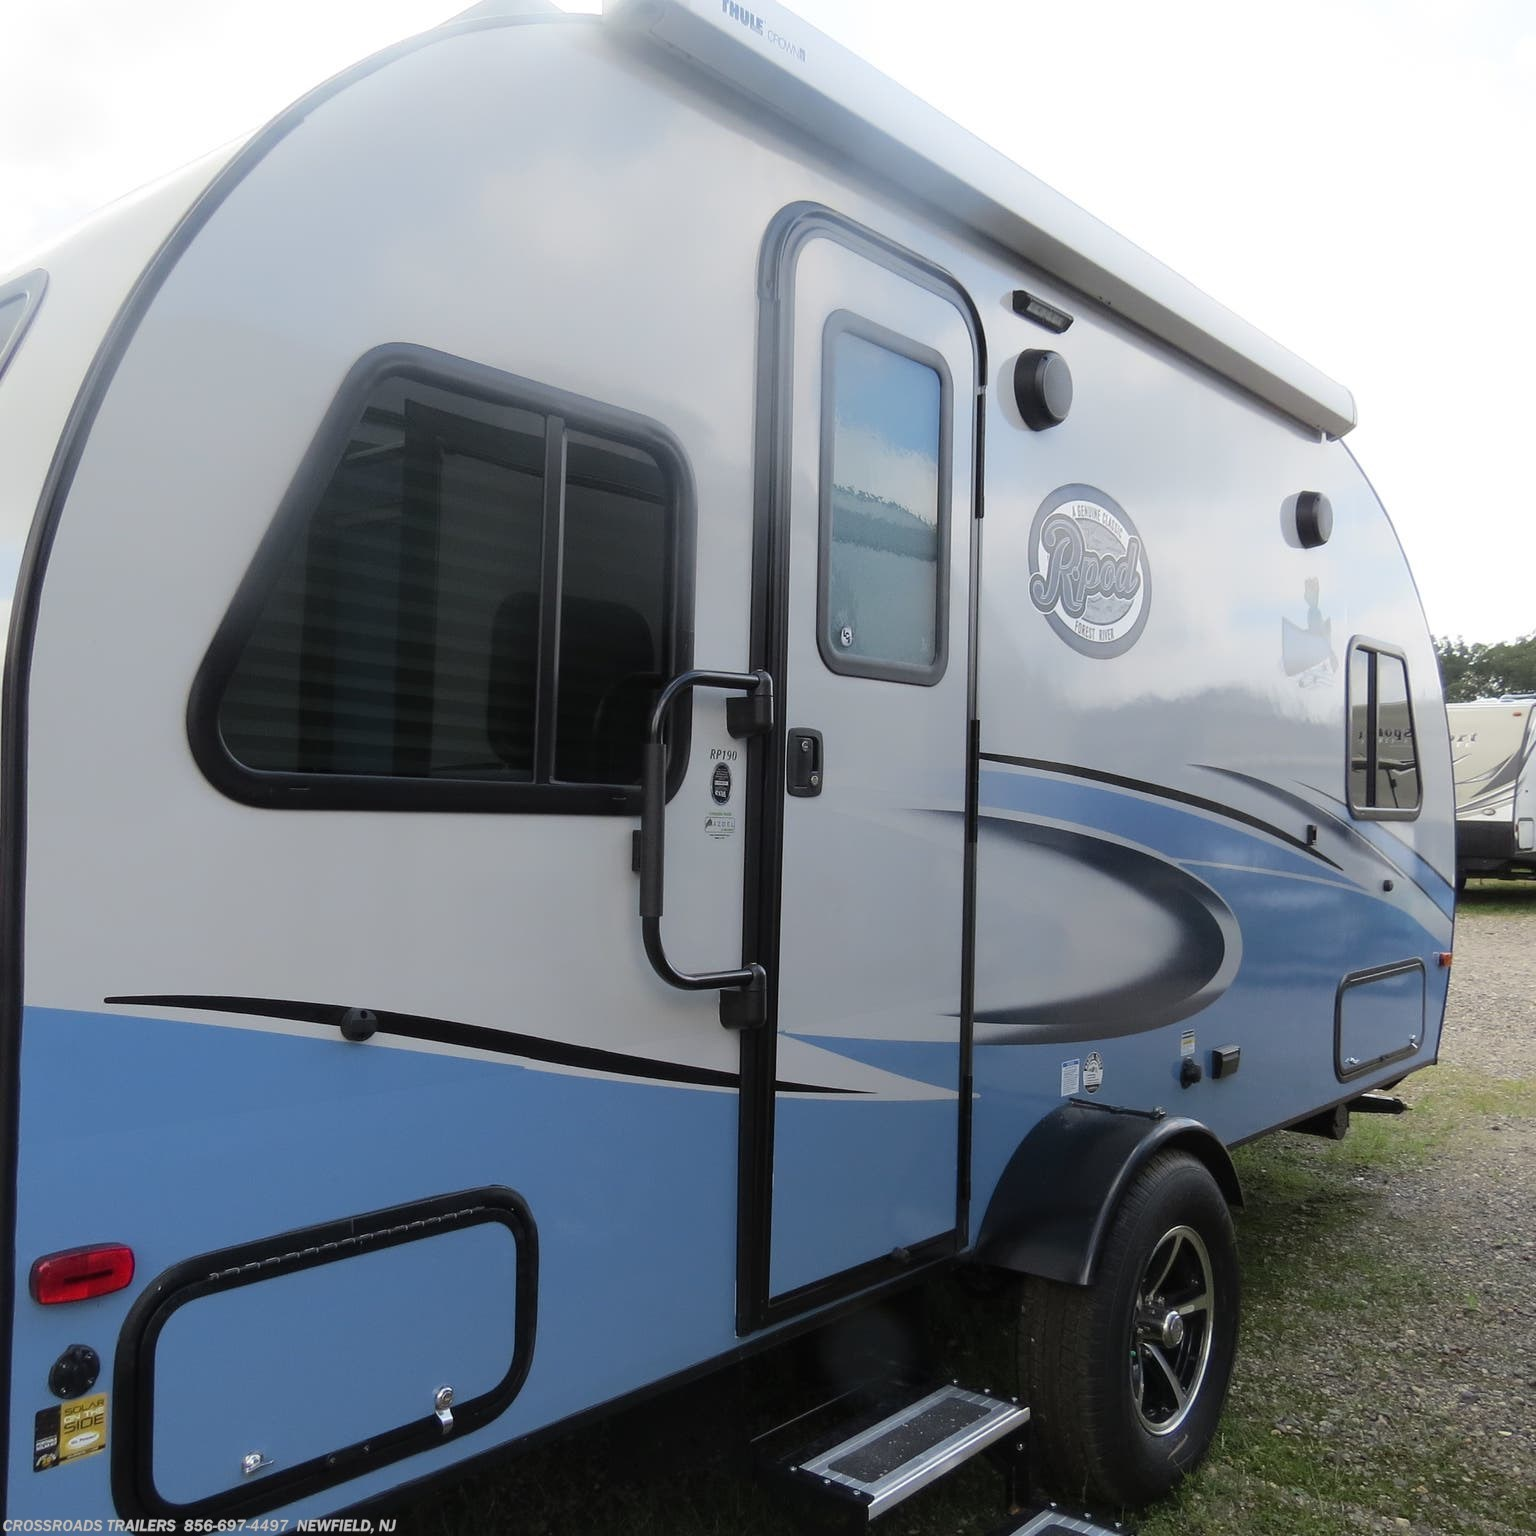 R Pod Trailer >> 21630 2019 Forest River R Pod Rp 190 For Sale In Newfield Nj